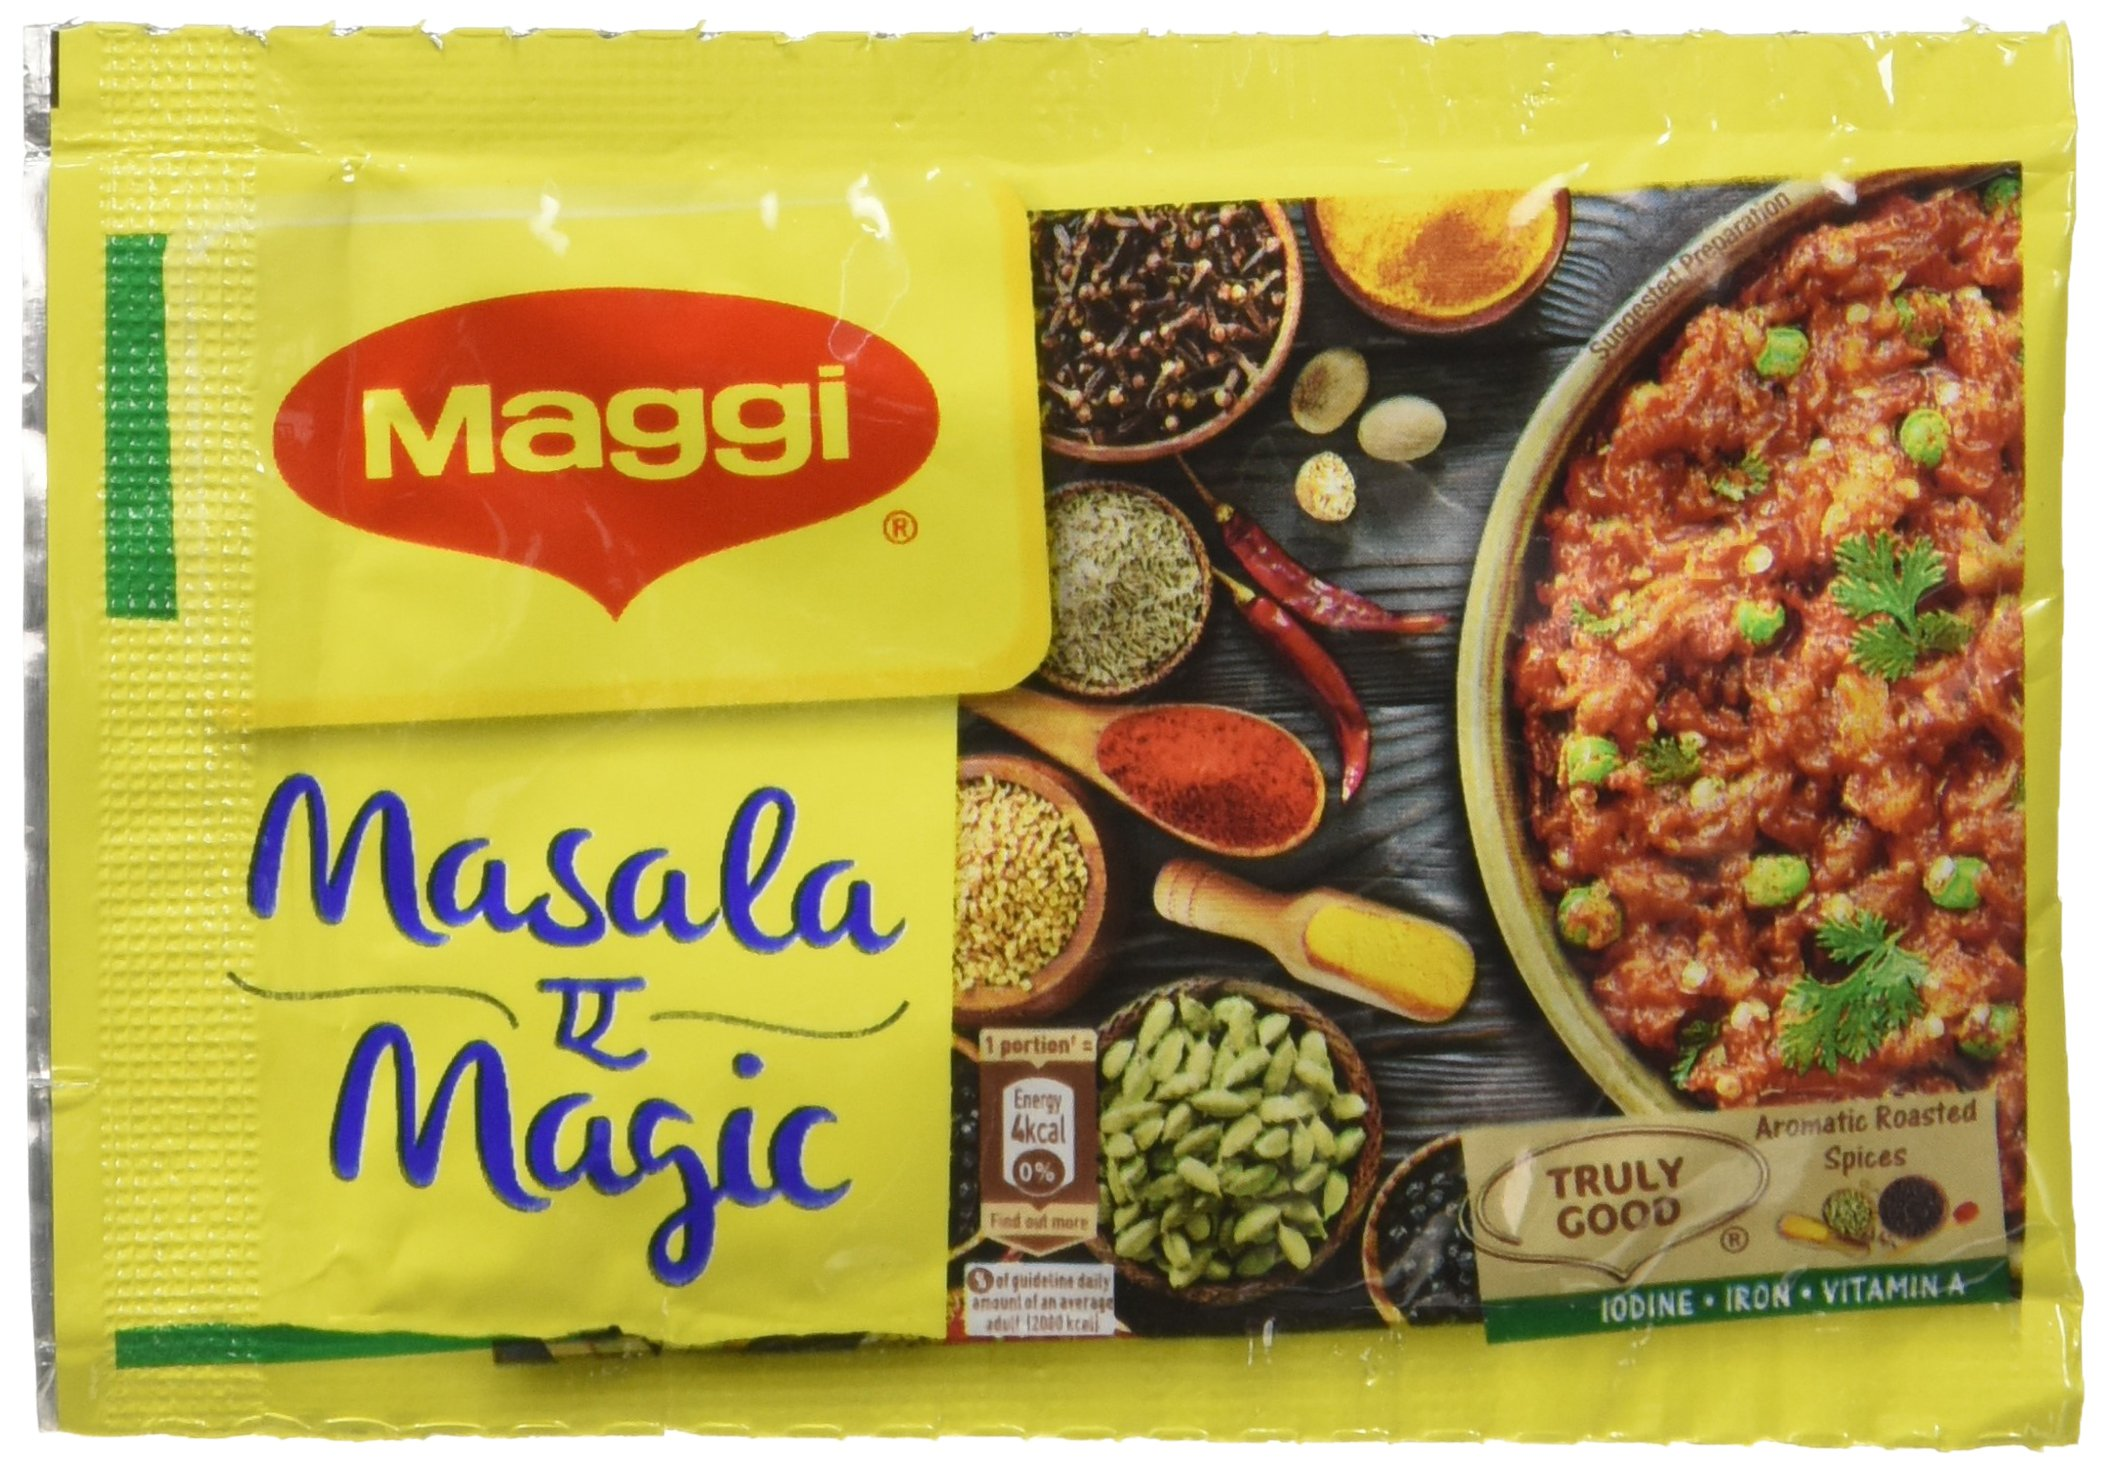 72 Sachet Maggi Masala a Magic the First Ever Fortified Taste Enhancer Taste of Indian Food Seasonings 6g X 72 = 432 Grams (Pack of 72 sachets)